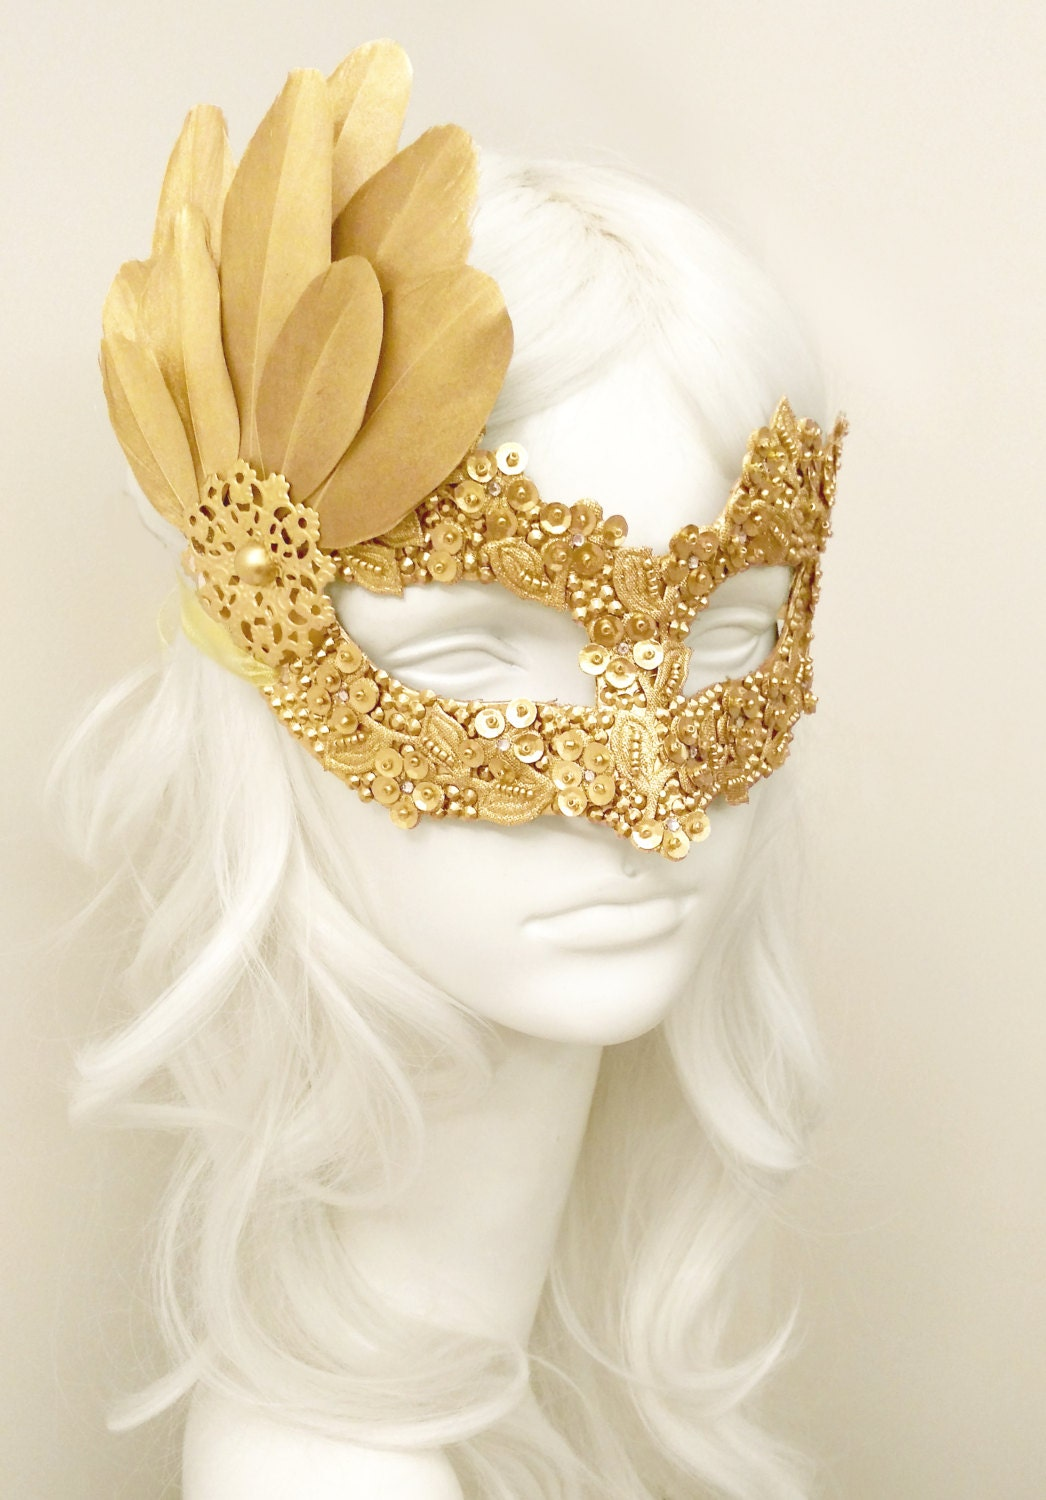 Sequined Gold Masquerade Mask With Rhinestones And Feathers